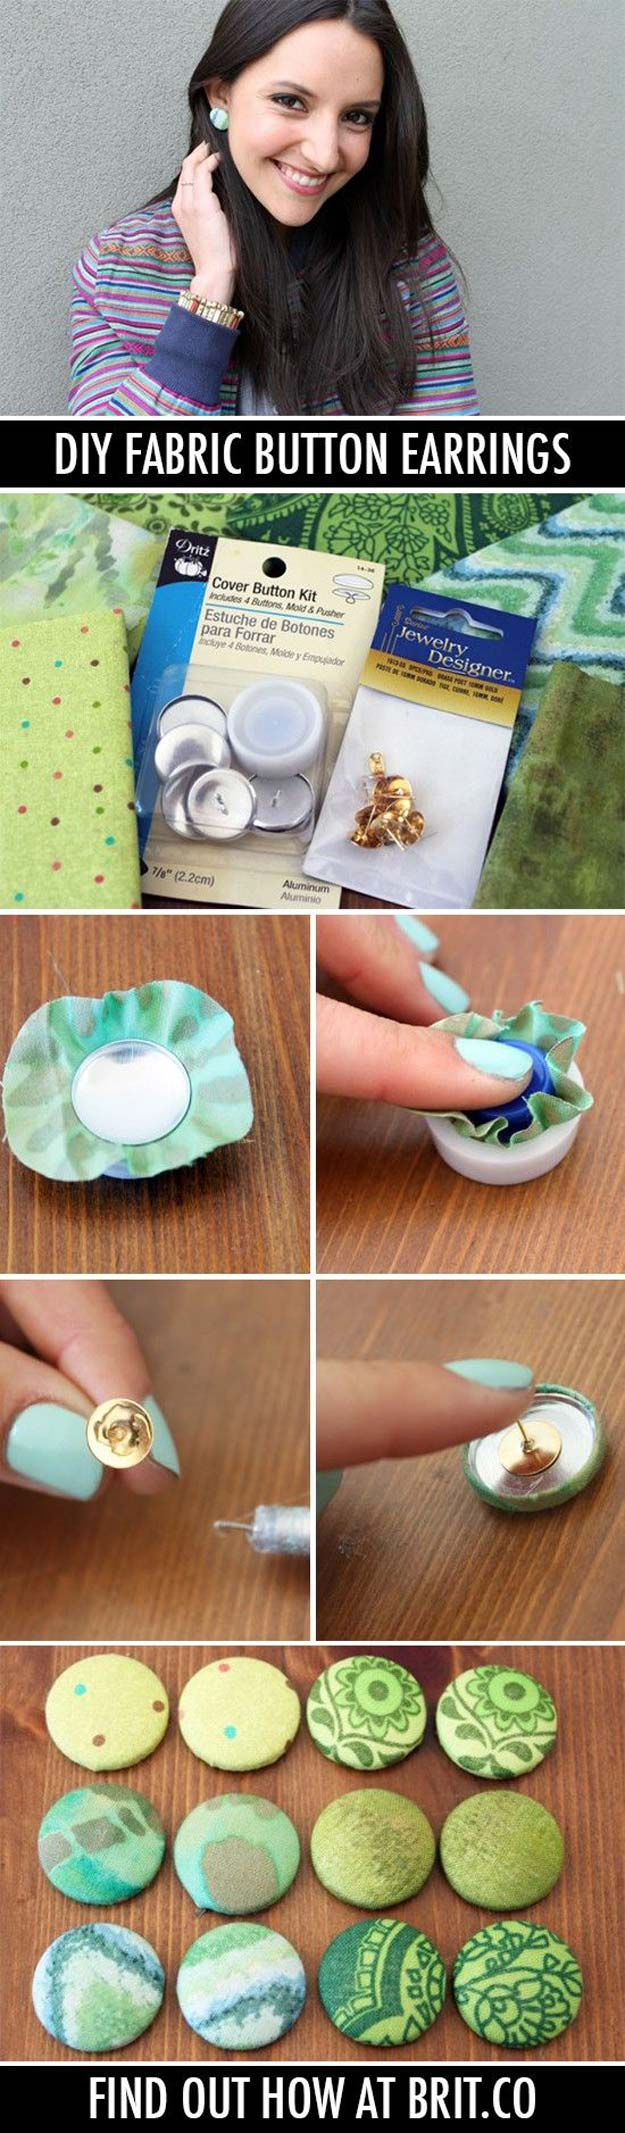 DIY Earrings and Homemade Jewelry Projects - Fabric Button Earrings - Easy Studs, Ideas with Beads, Dangle Earring Tutorials, Wire, Feather, Simple Boho, Handmade Earring Cuff, Hoops and Cute Ideas for Teens and Adults http://diyprojectsforteens.com/diy-earrings